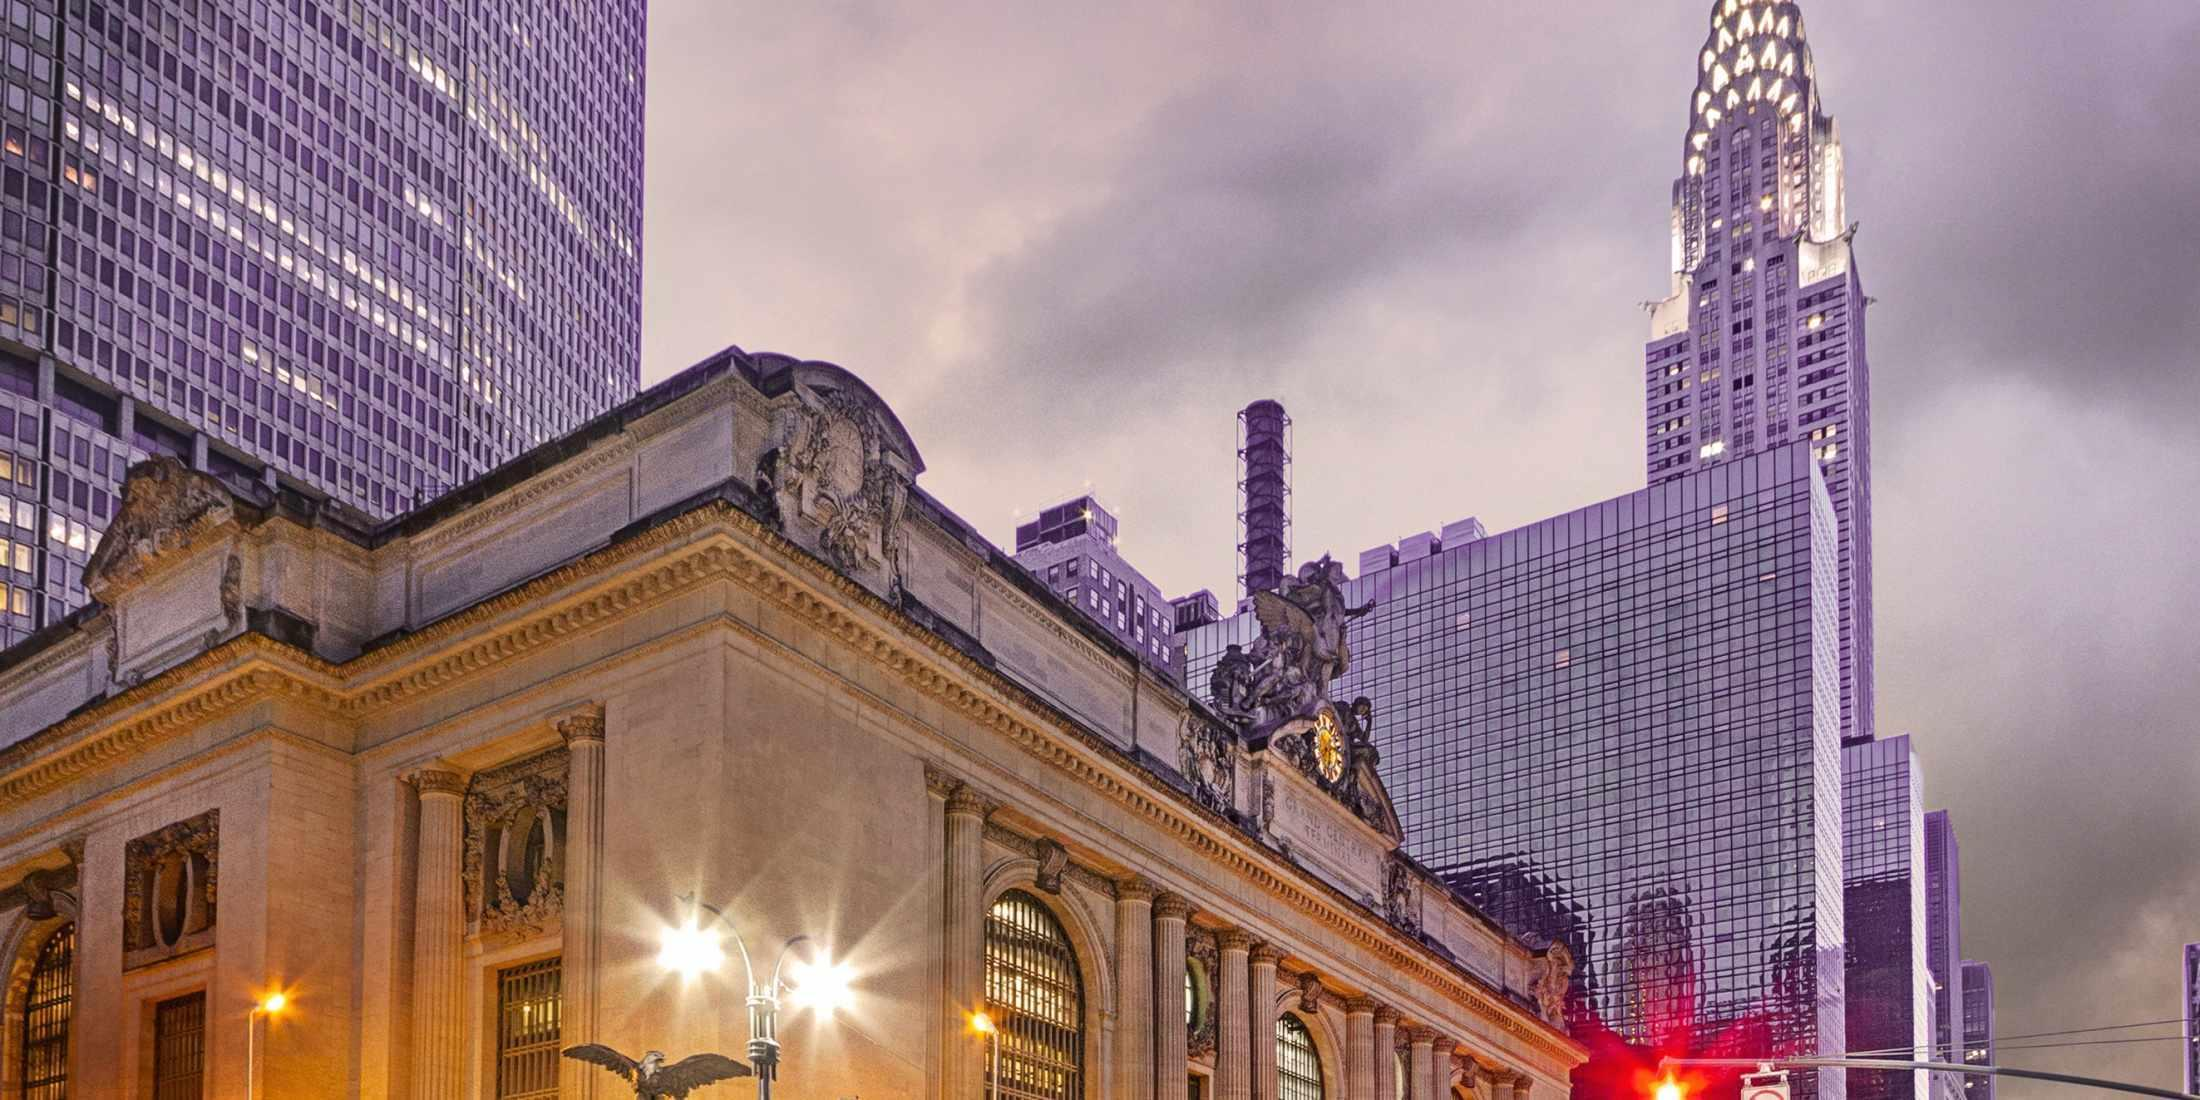 The historic Grand Central Station!